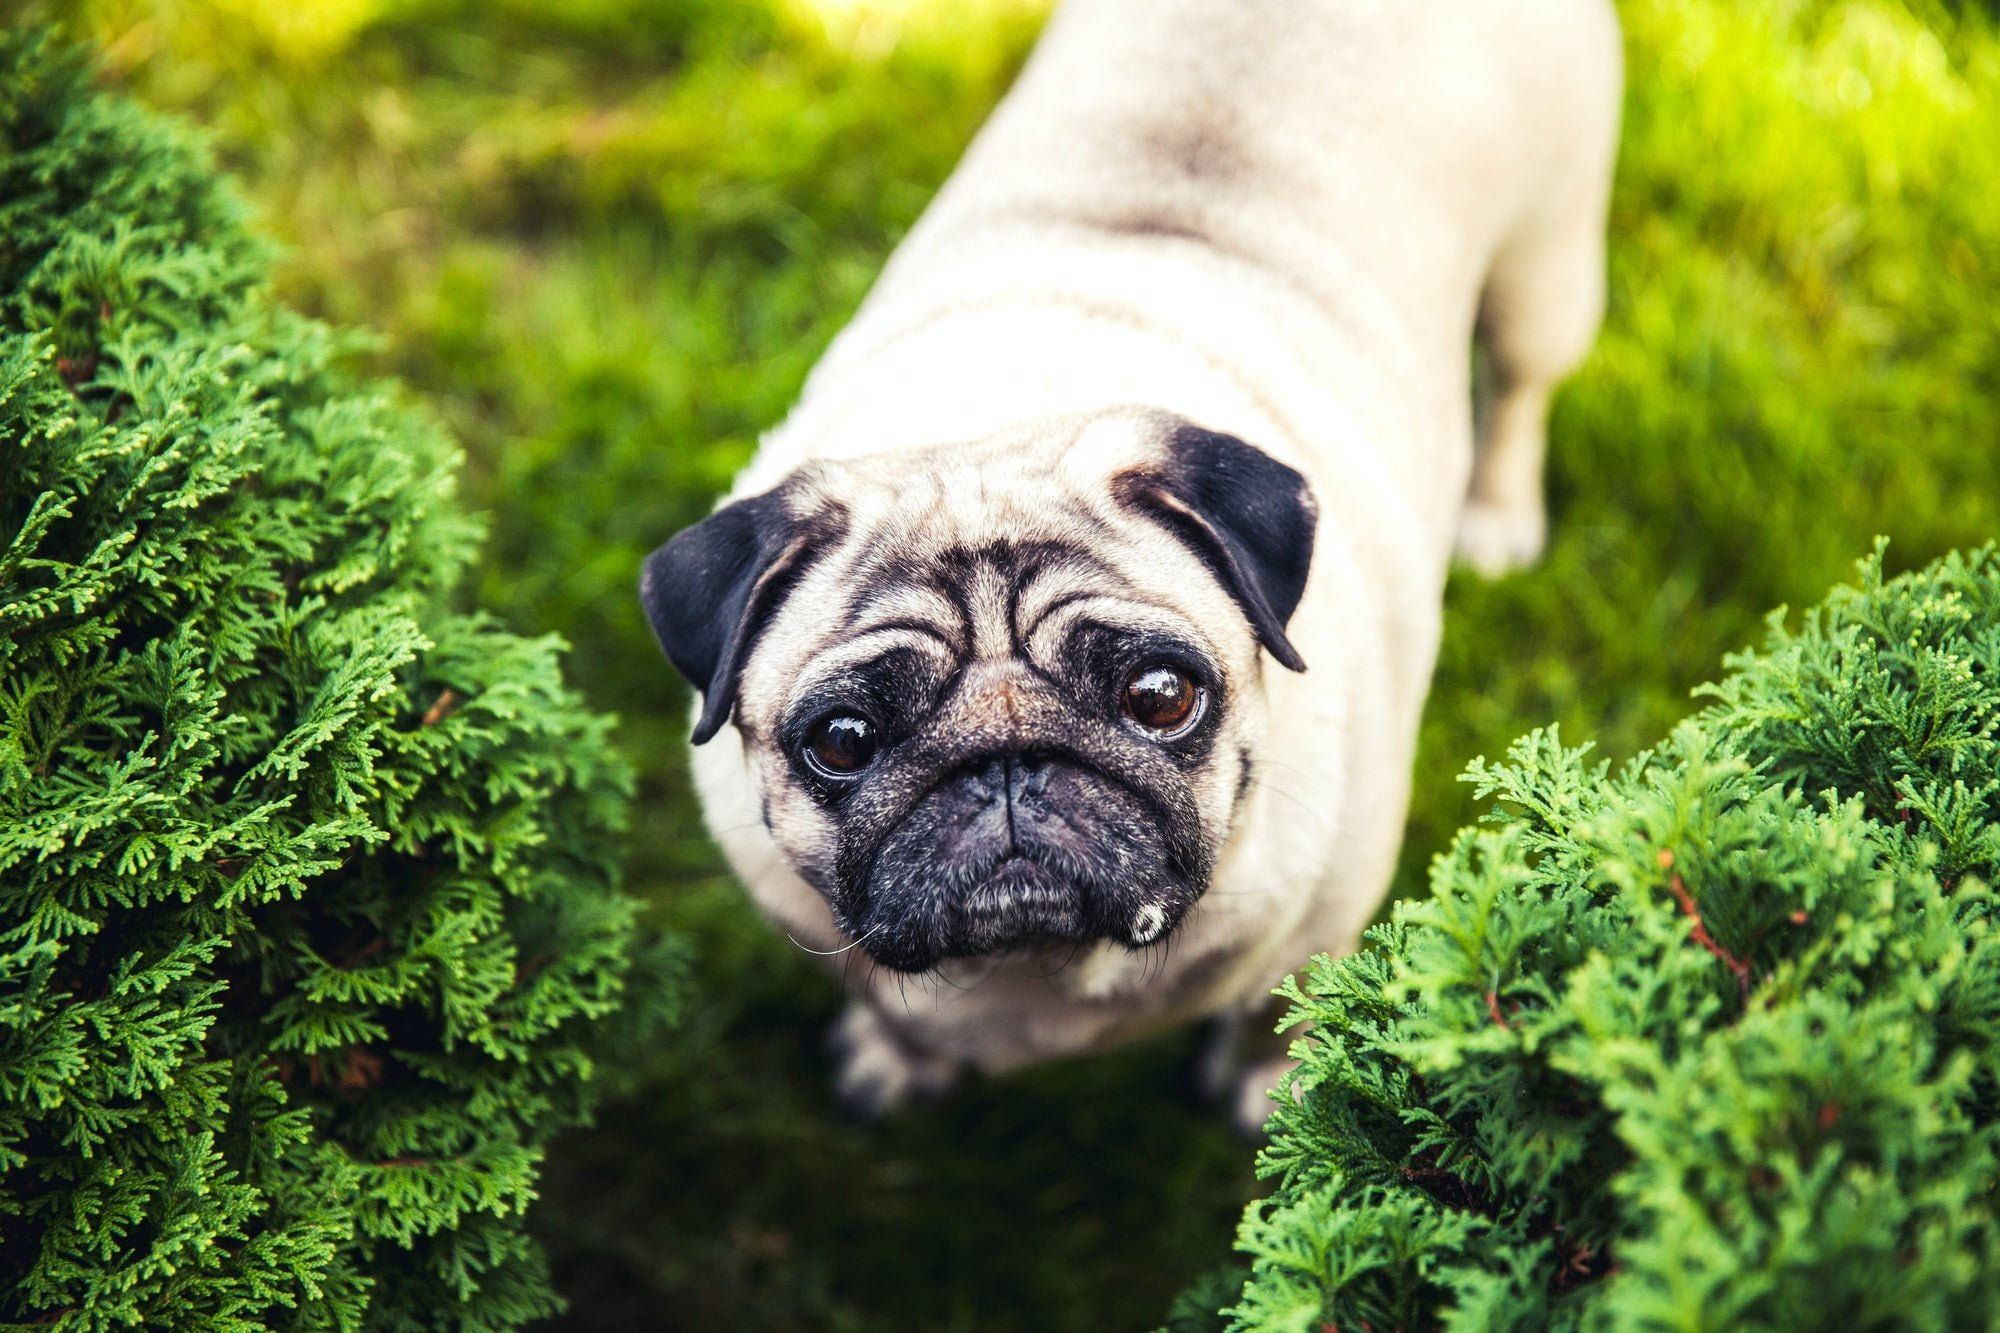 Funny pug on a grass in a summer park